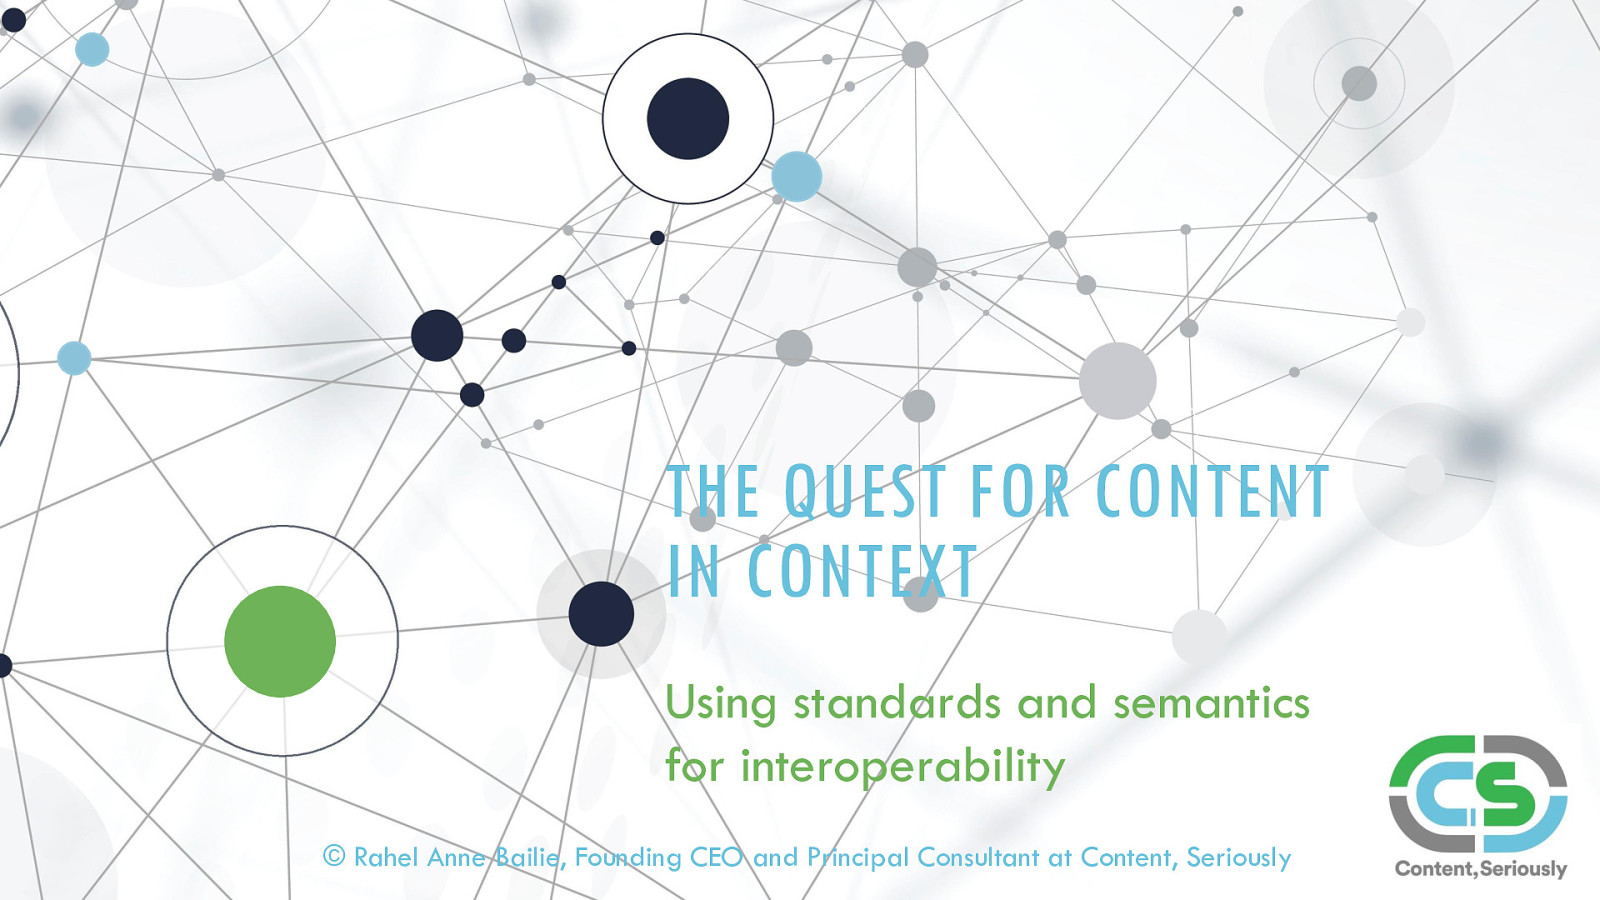 The Quest for Content in Context: Standards and Semantics for Interoperability